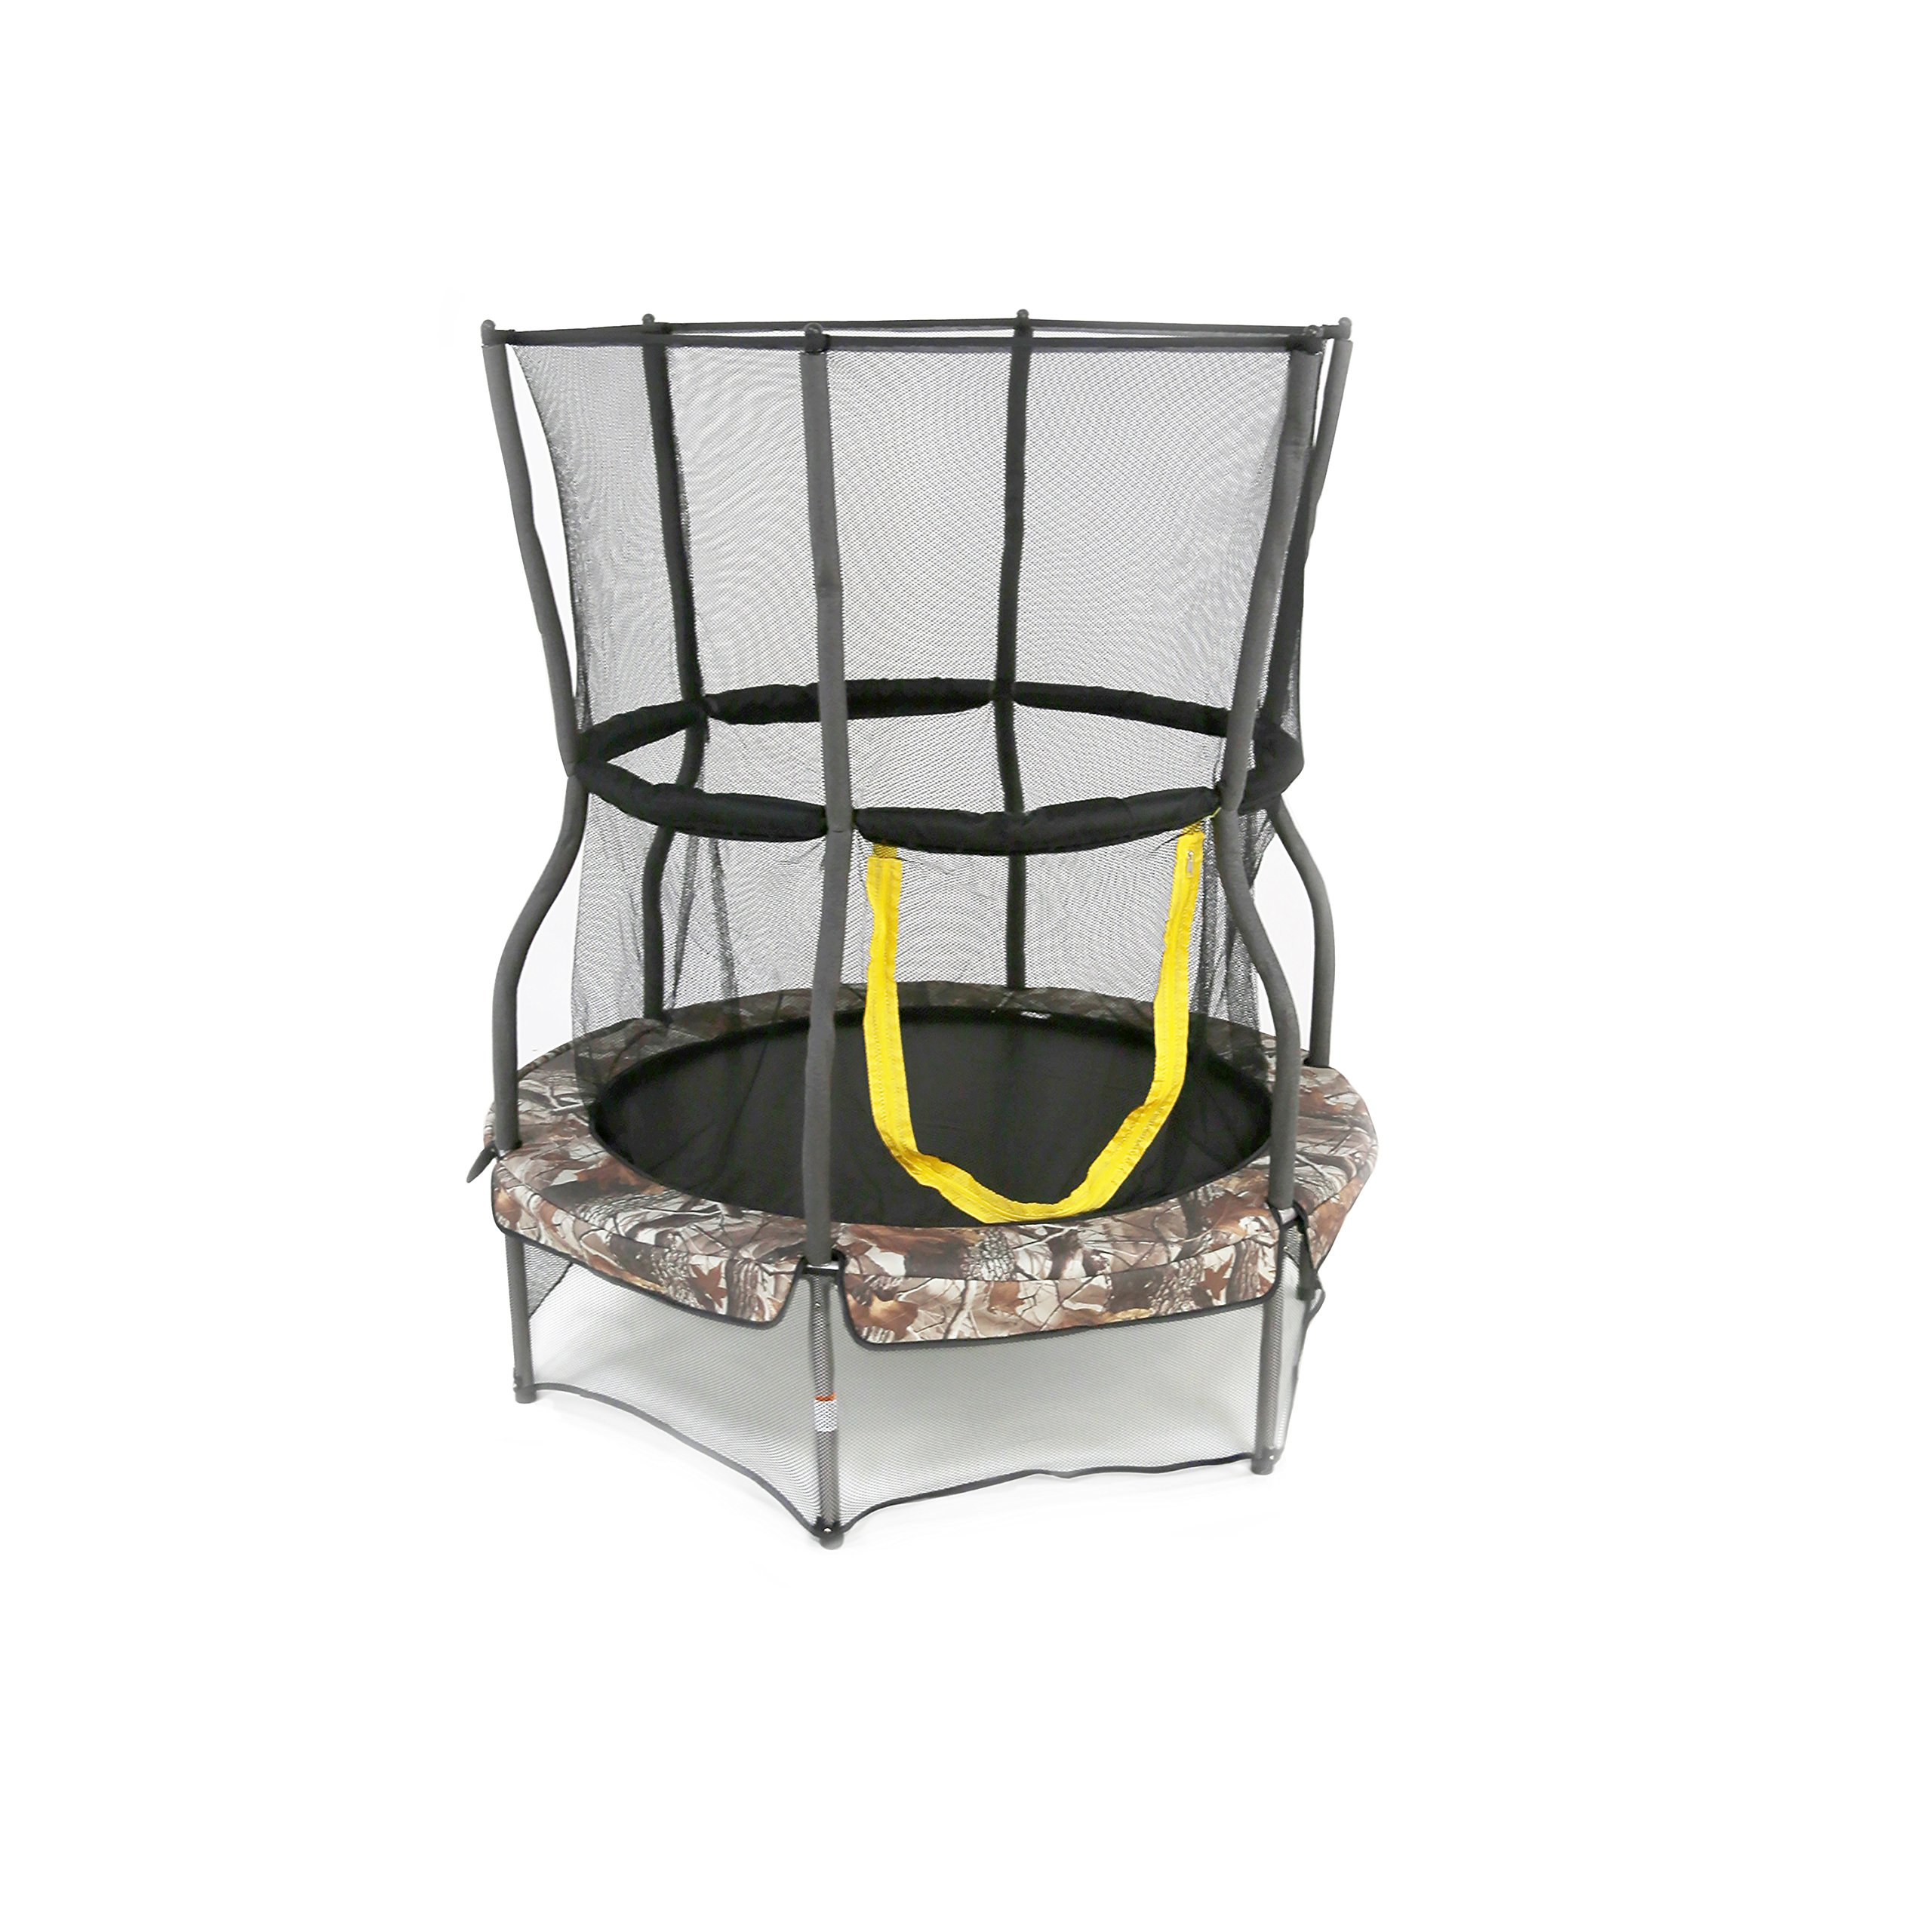 "Skywalker Trampolines 48"" Round Trampoline Mini Bouncer with Enclosure – Camo"